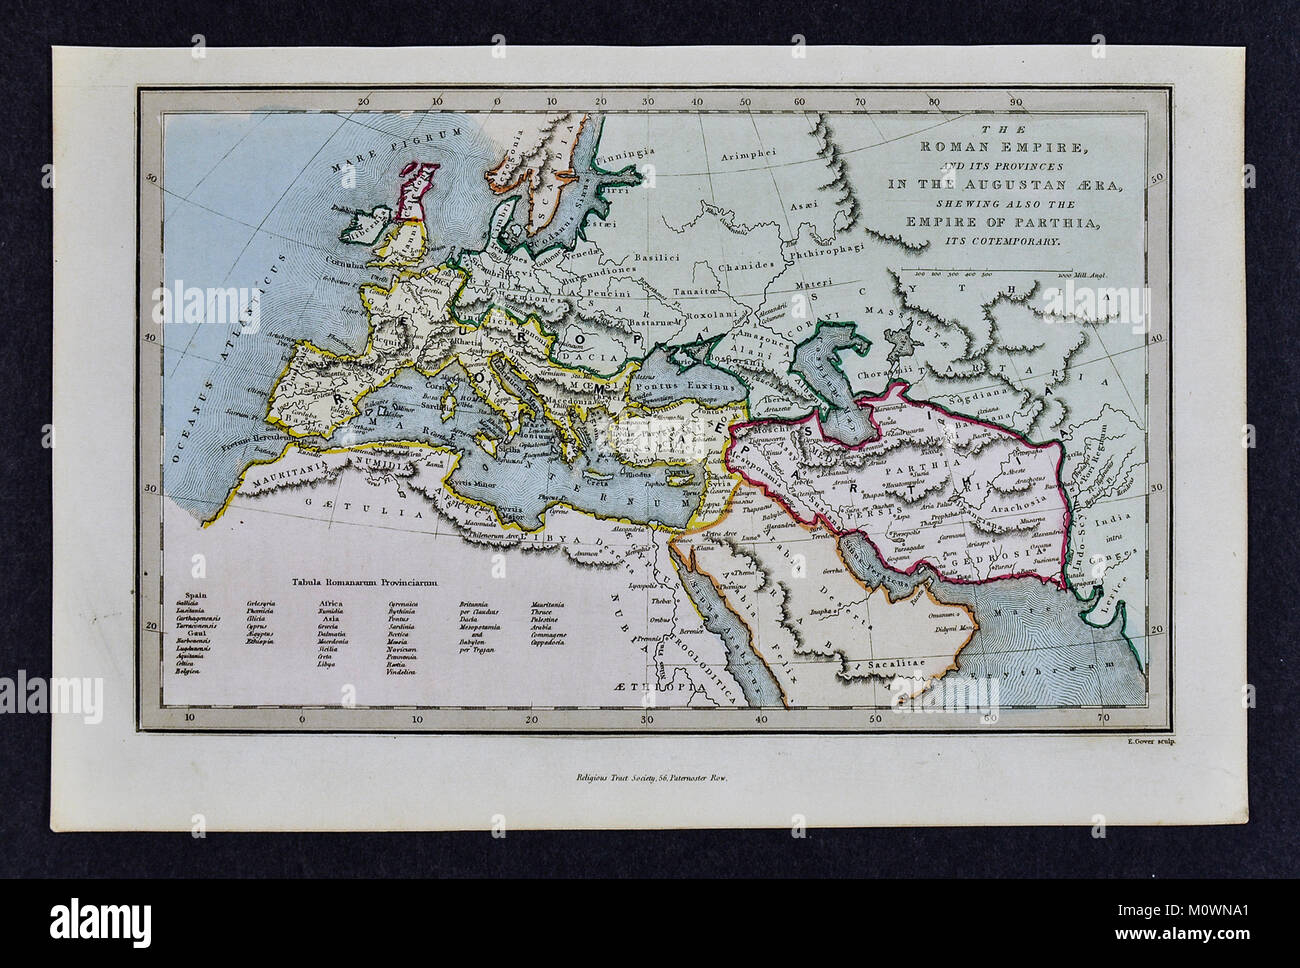 1799 Bible Tract Society Map - The Roman Empire and its Provinces in the Era of Augustus - Stock Image